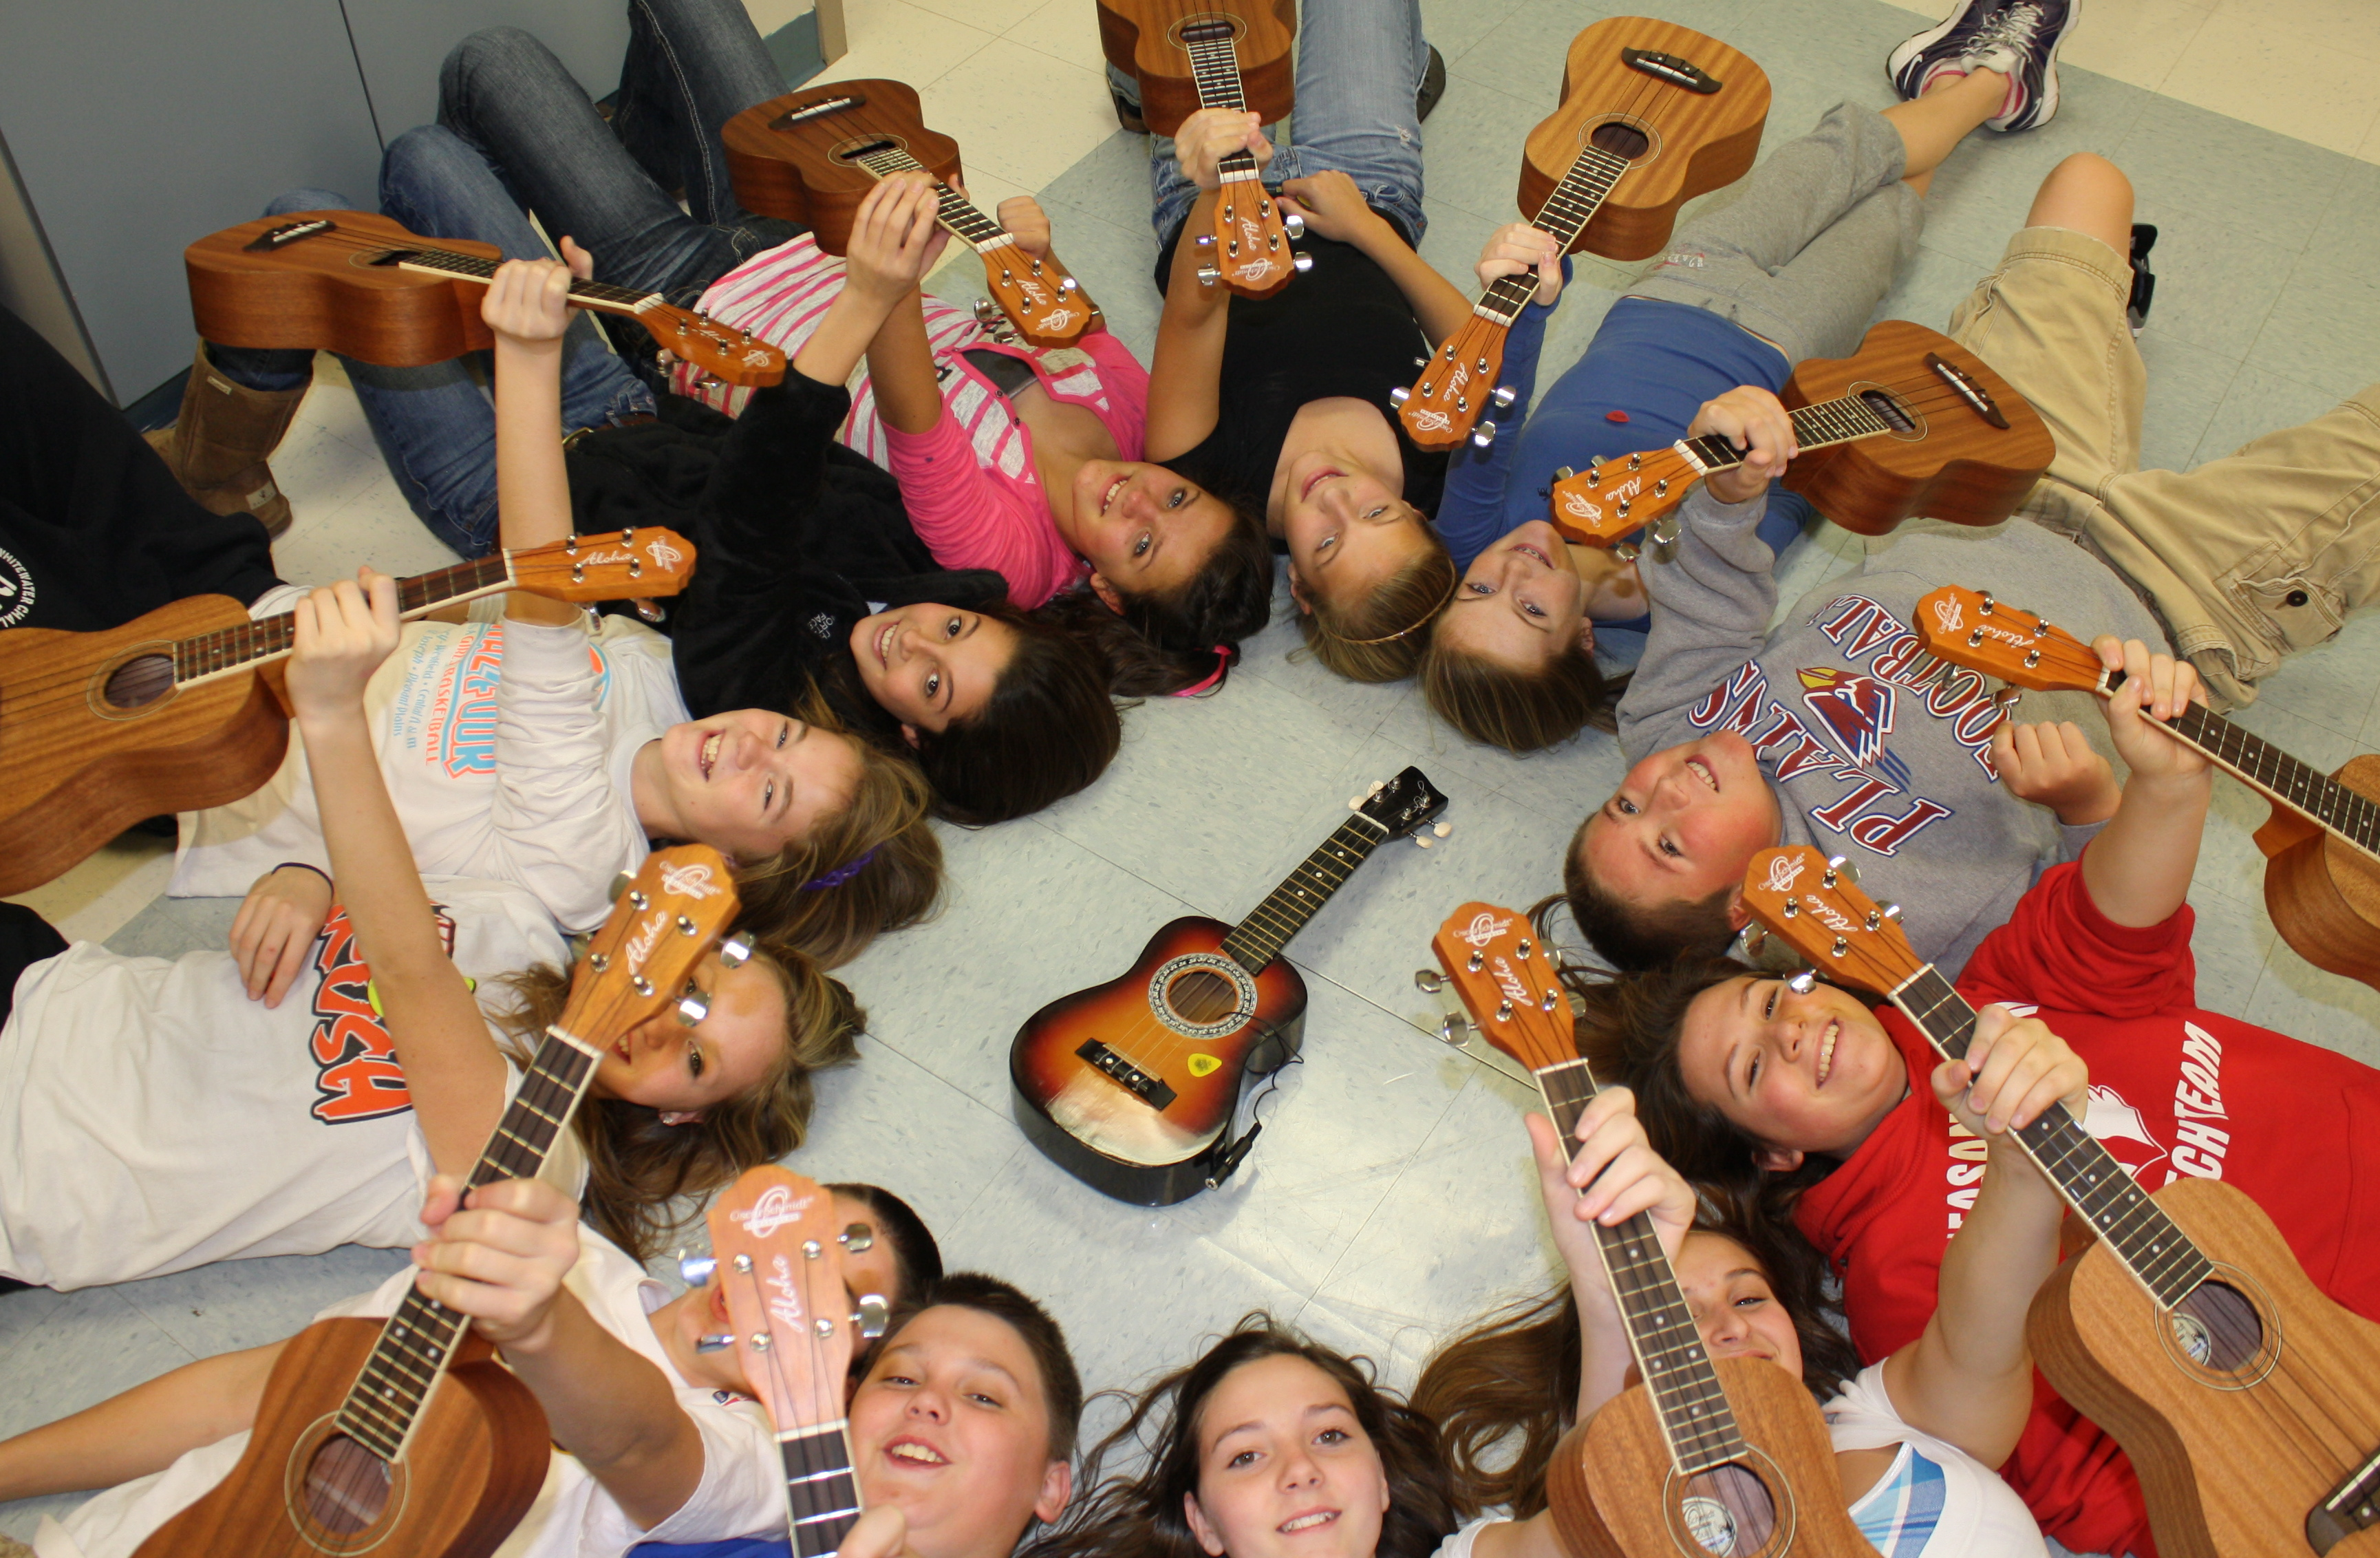 Ukulele Lessons at Northwest School of Music | Fun activities for kids in Salem, Oregon